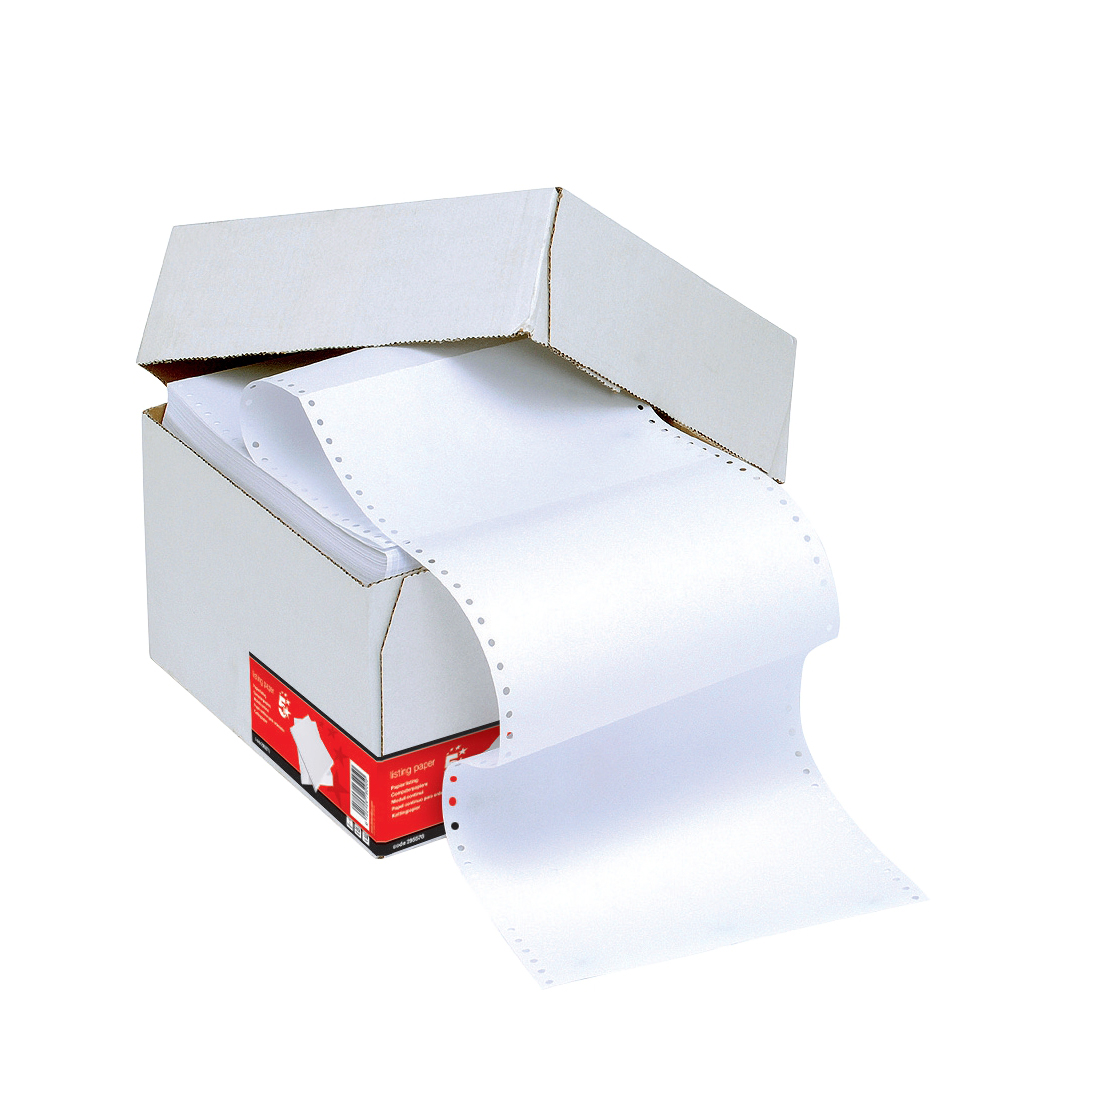 Listing Paper 5 Star Office Listing Paper 1-Part 60gsm 11inchx368mm Plain 2000 Sheets